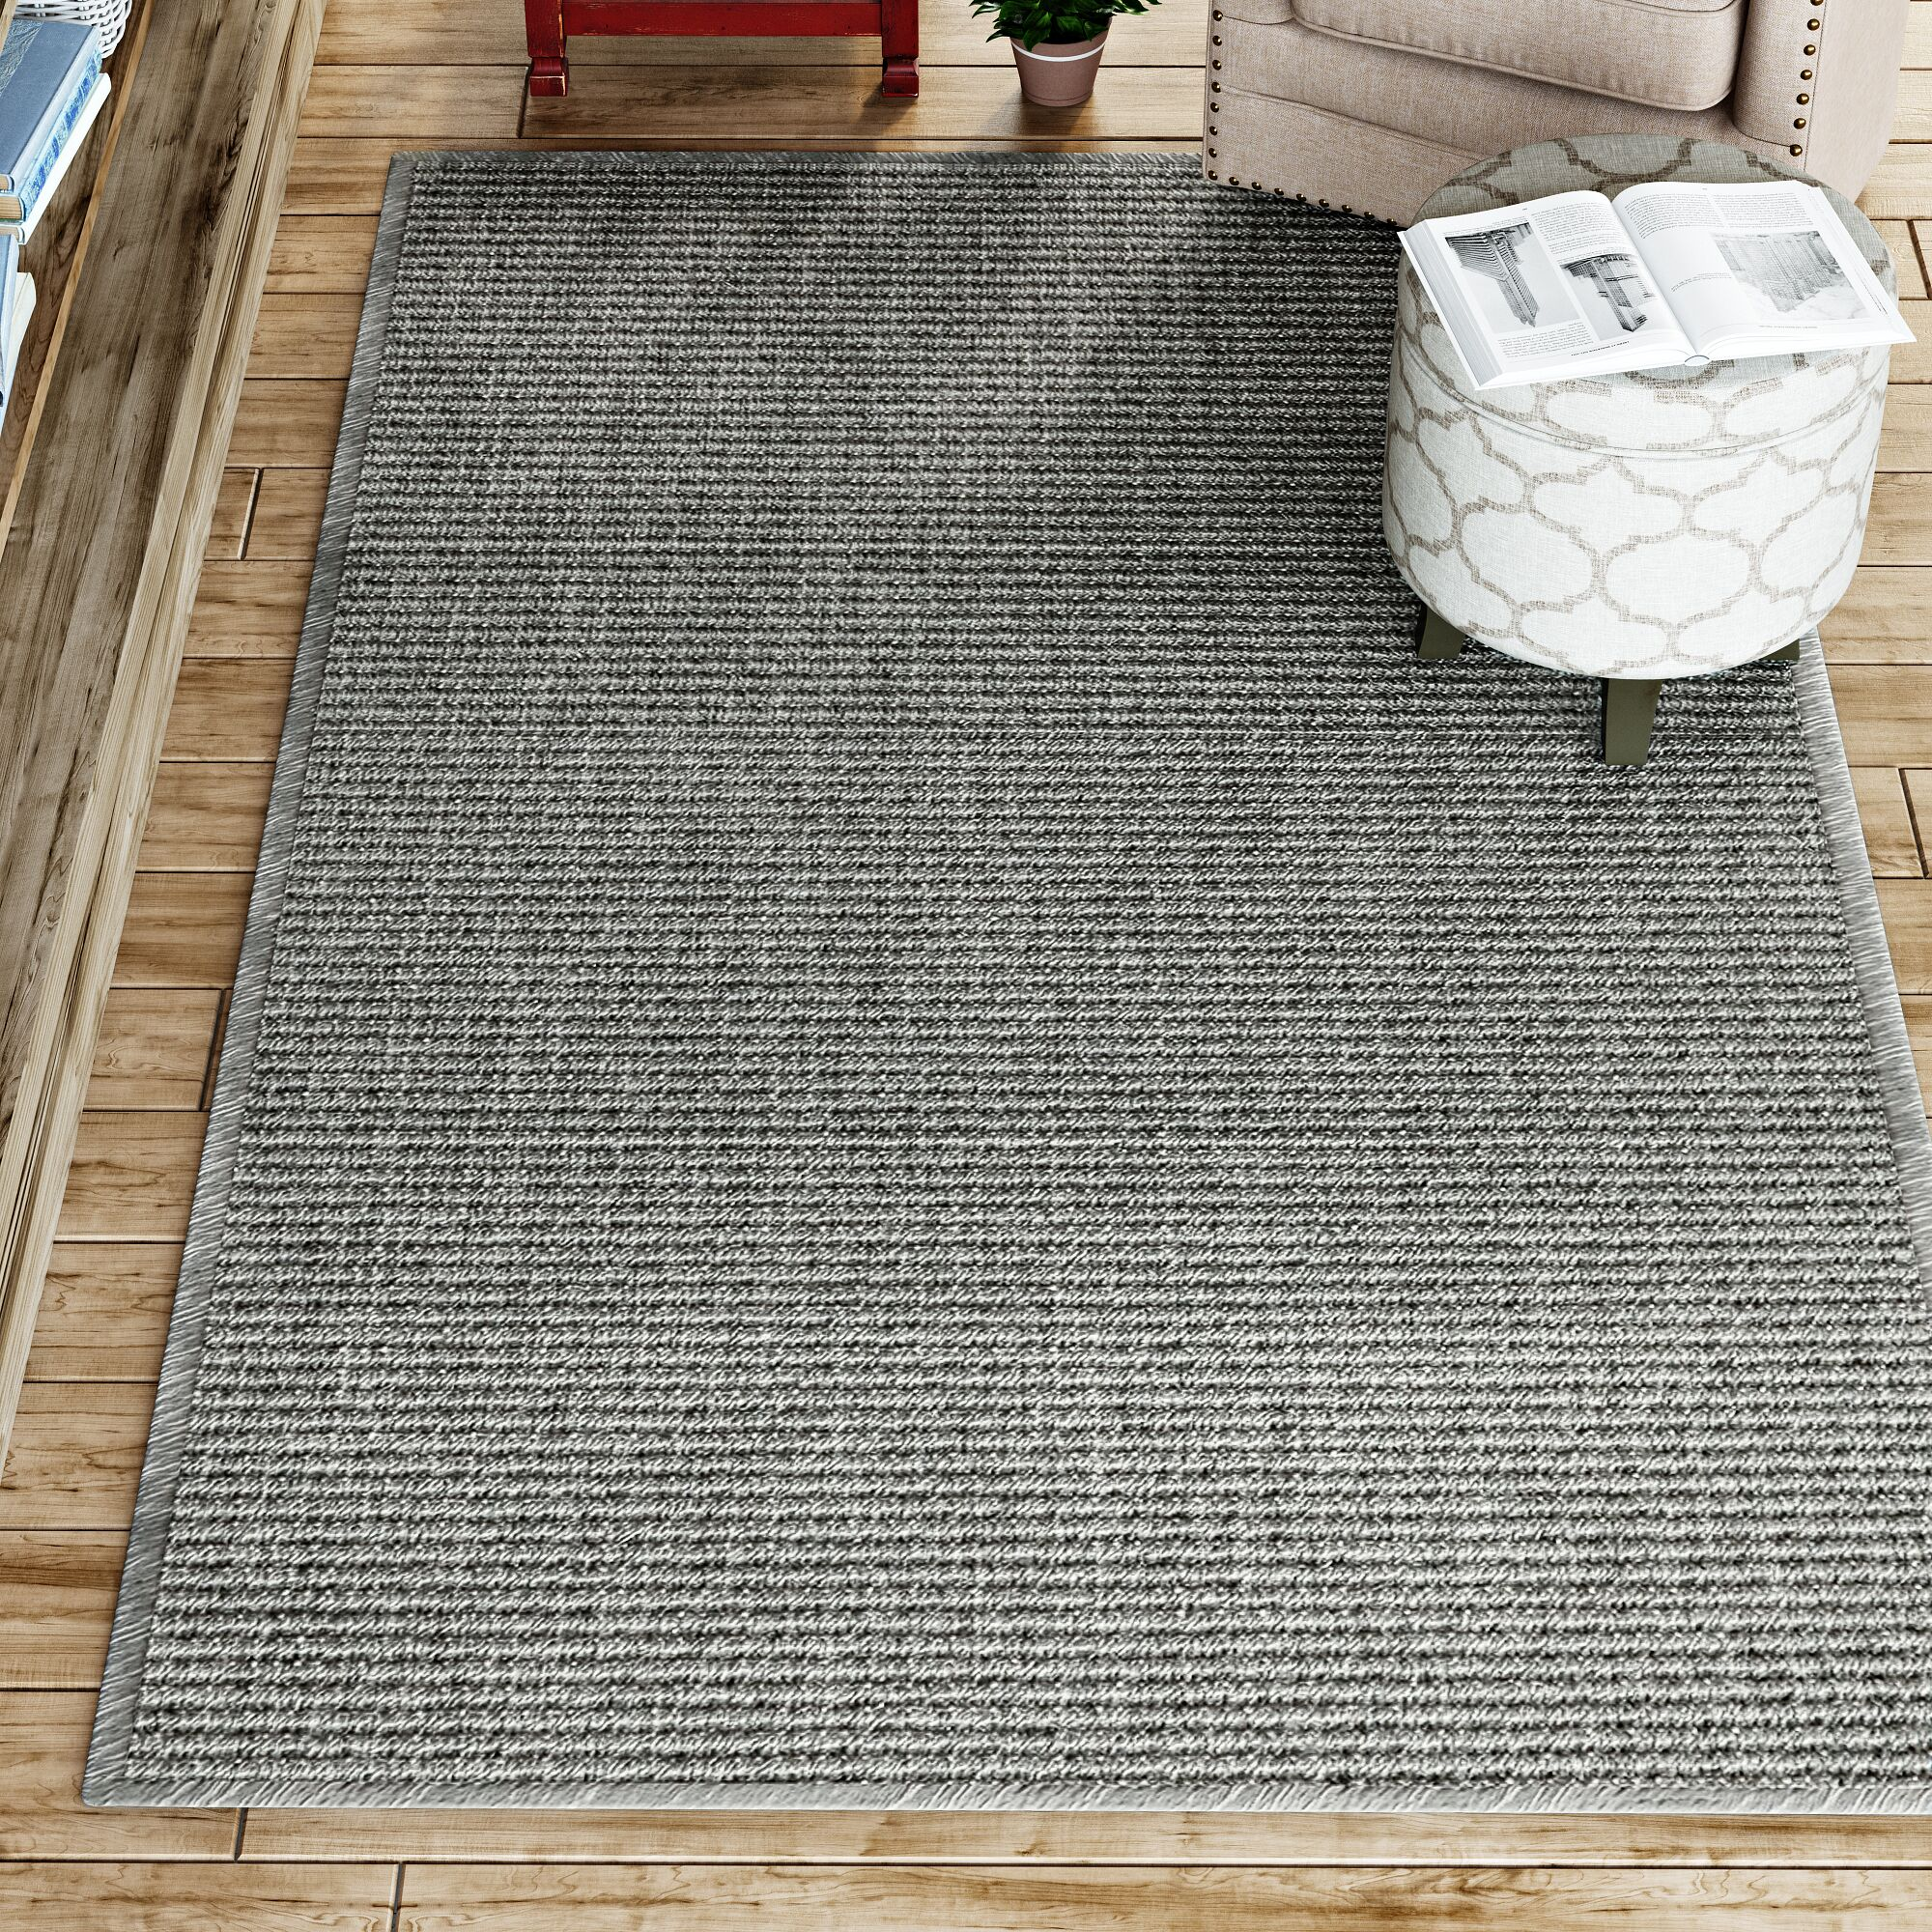 Paquerette Gray Area Rug Rug Size: 10' x 14'